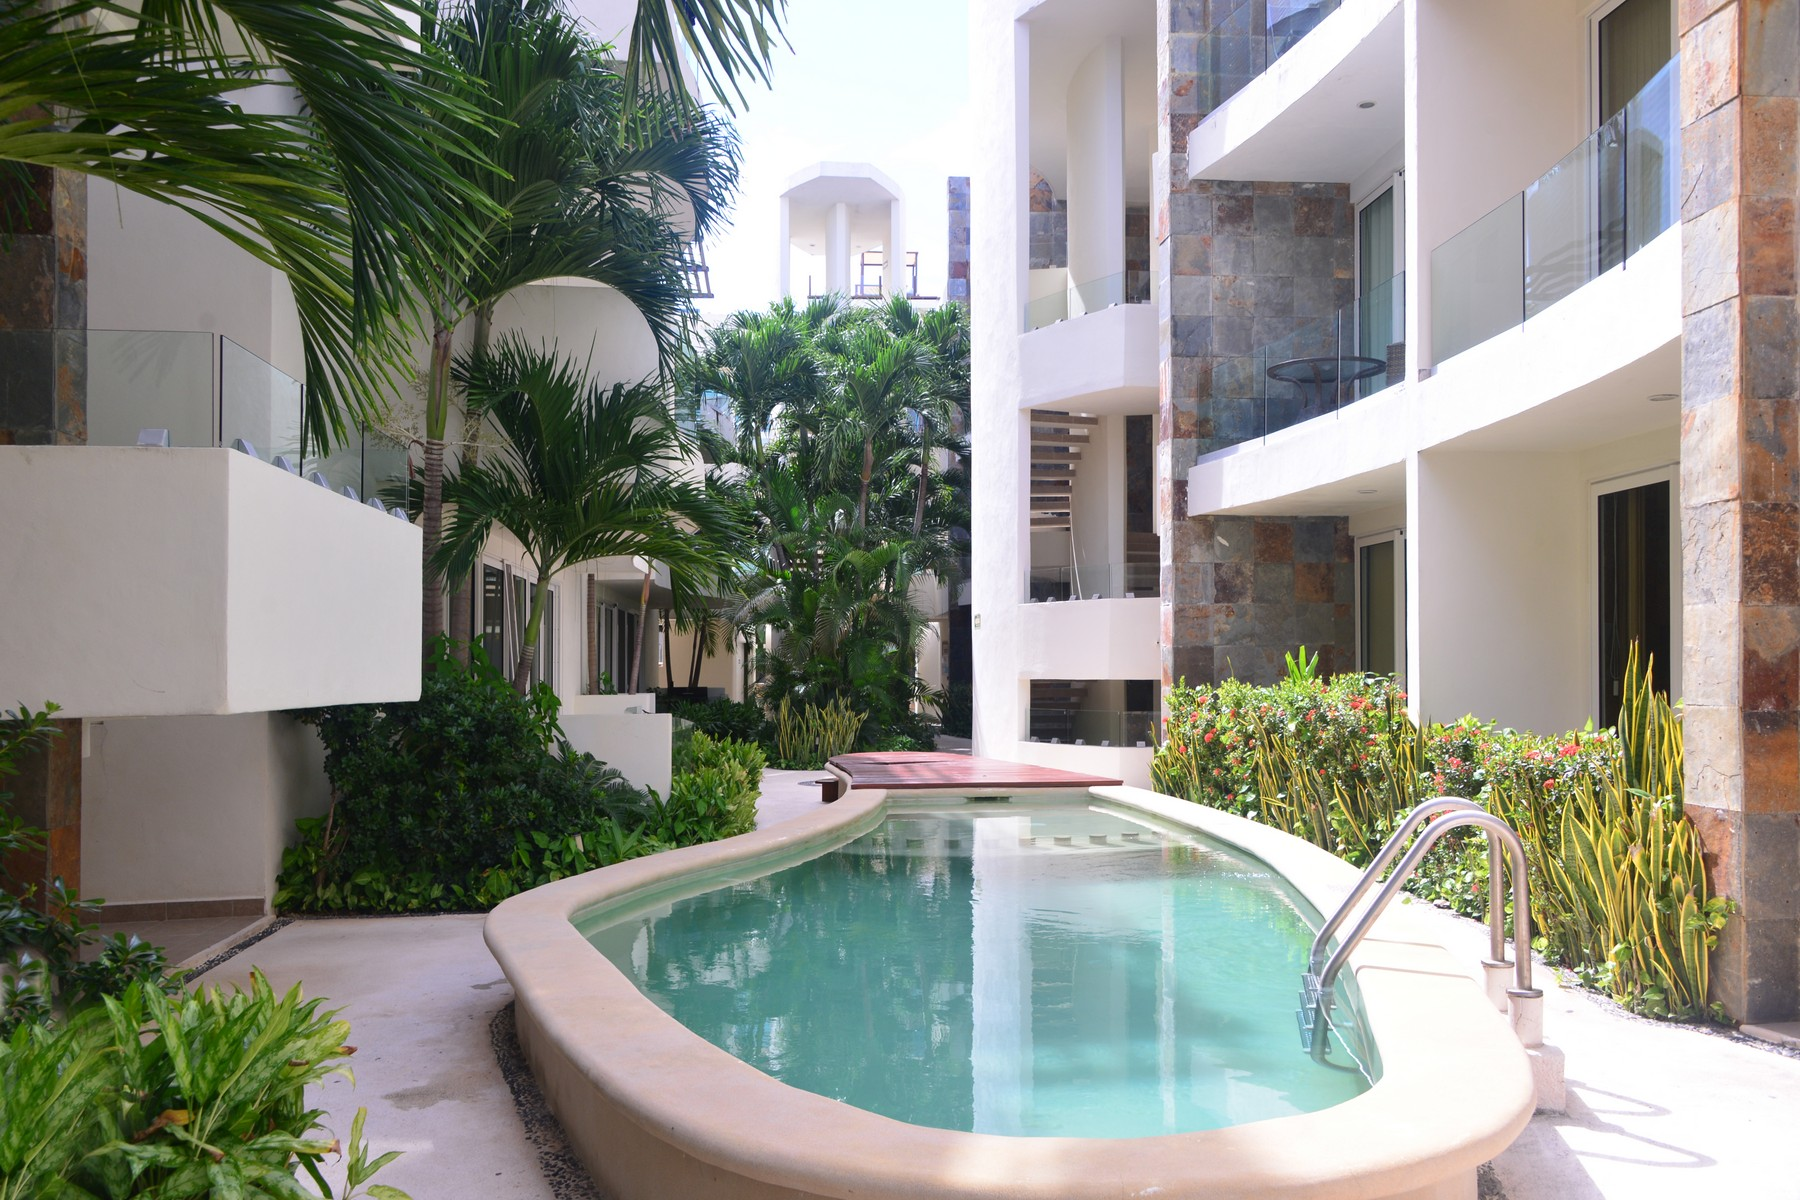 Apartment for Sale at MAMITAS LUXURY CONDO Mamitas Luxury Condo Av. Cozumel entre calle 28 norte y calle 32 Playa Del Carmen, Quintana Roo 77710 Mexico